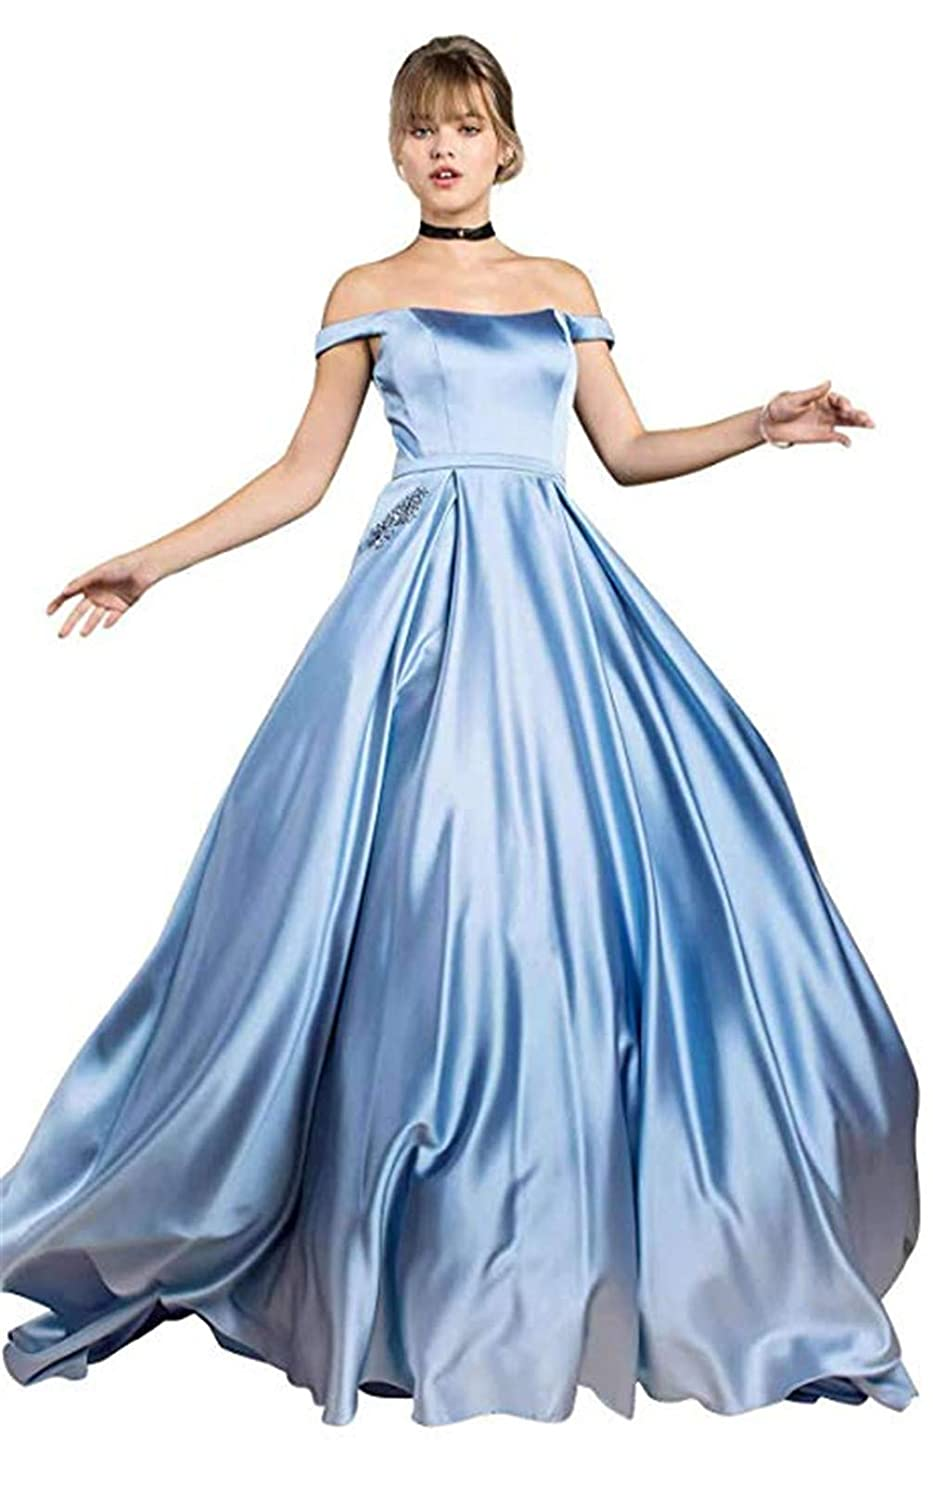 cf5b7aac10e Hatail Long Prom Dresses with Pockets Off The Shoulder Beaded Satin A-line  Evening Gowns for Women at Amazon Women s Clothing store